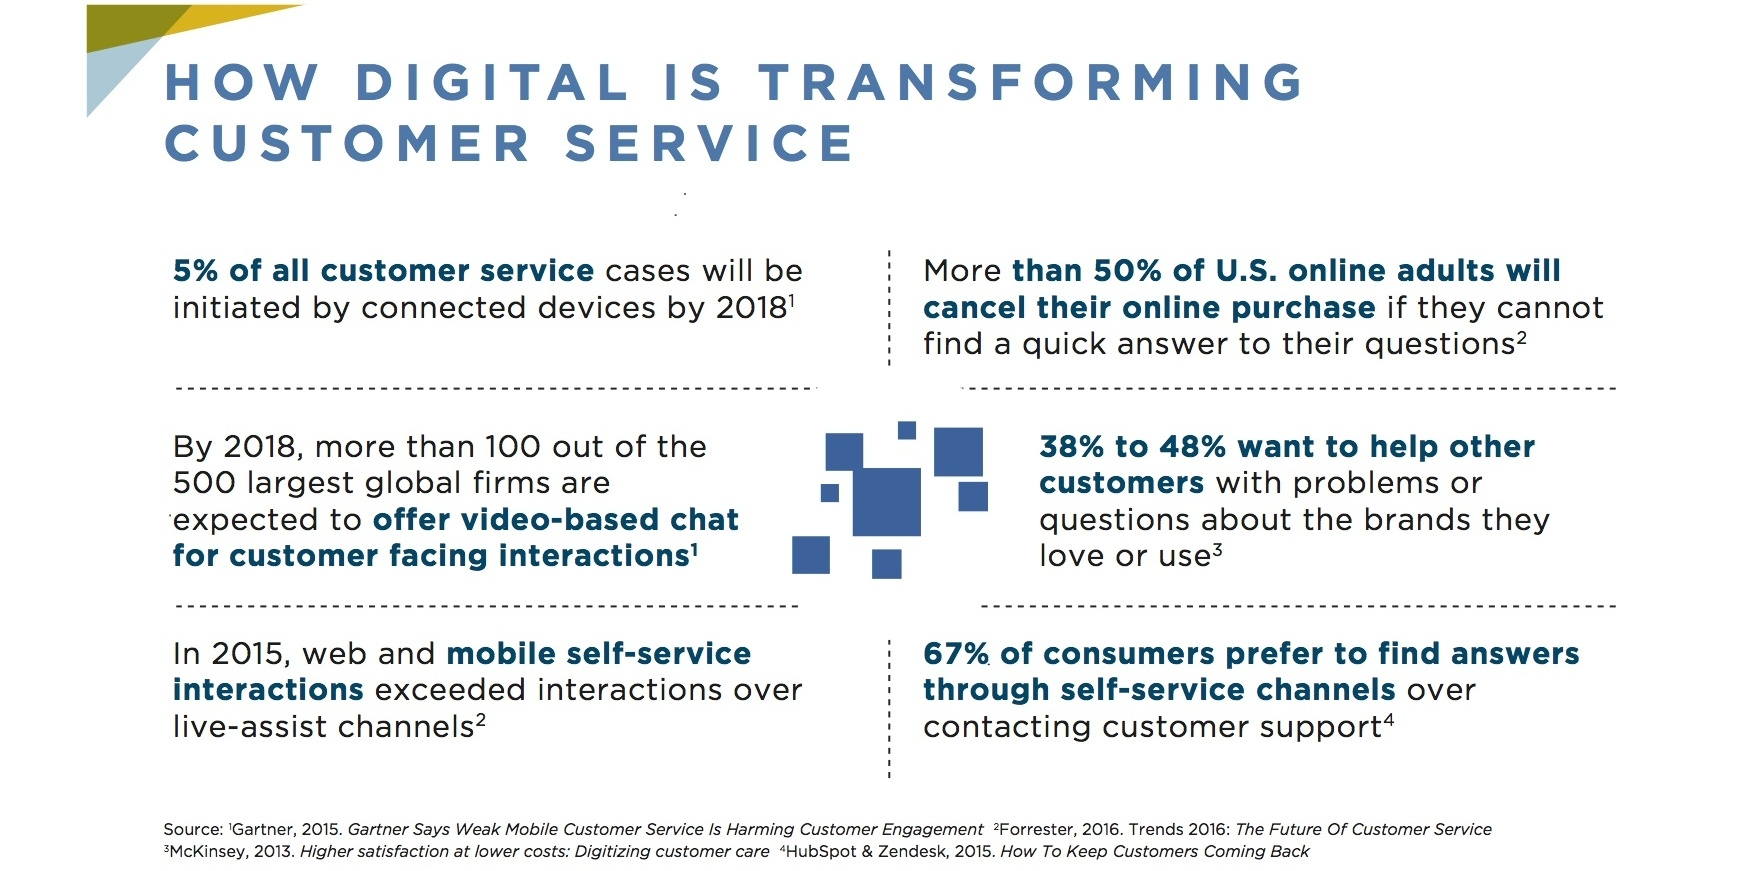 how is digital is transforming customer service